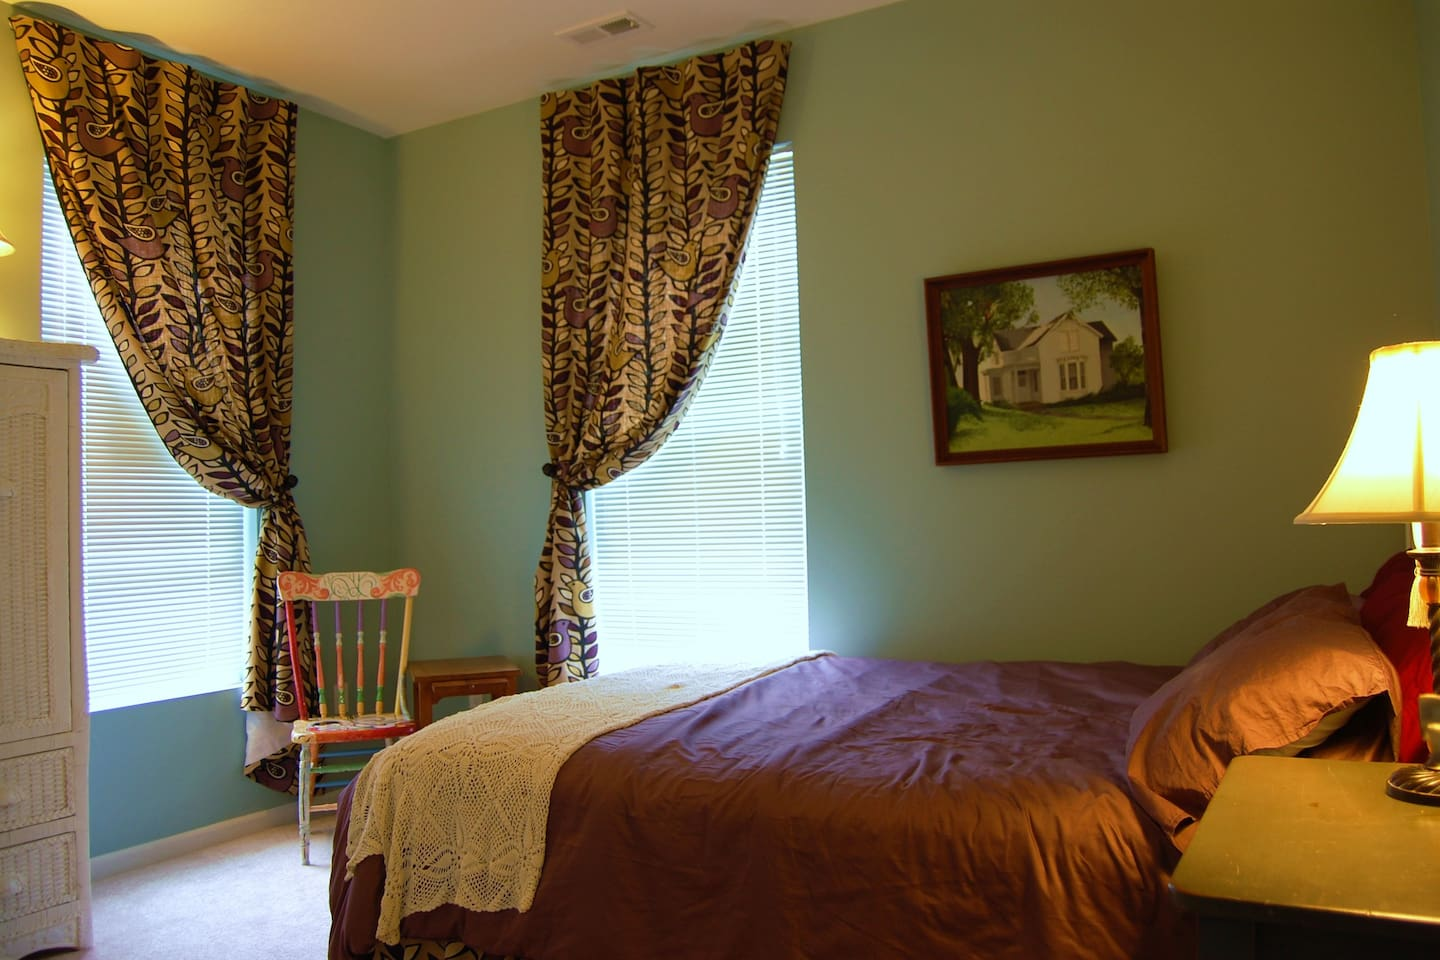 Queen bed, high ceilings, and workable drapes make this a cozy room